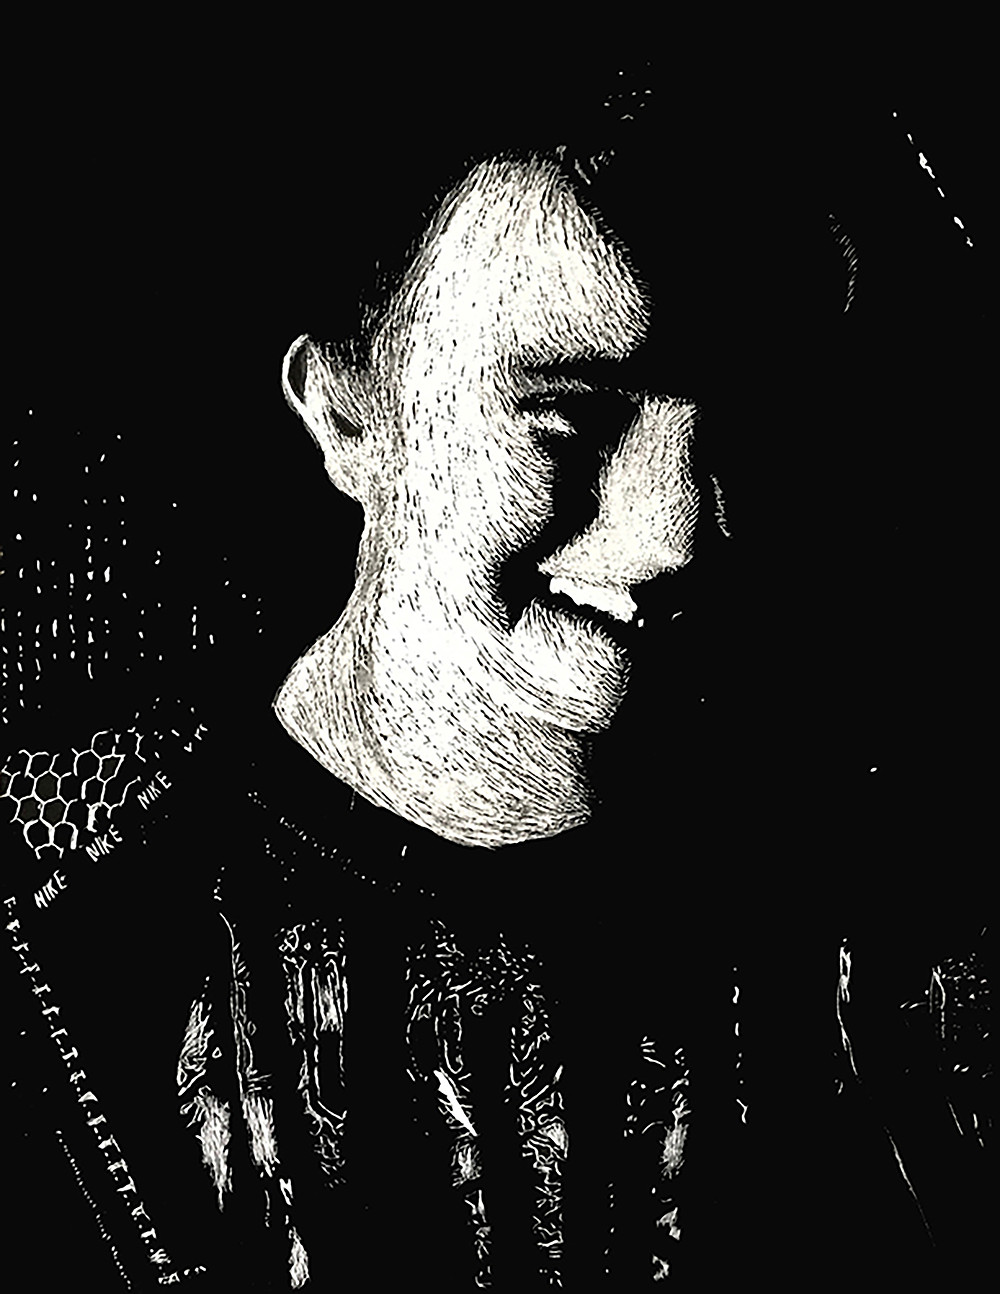 My first scratchboard, a self-portrait for an assignment in high school.